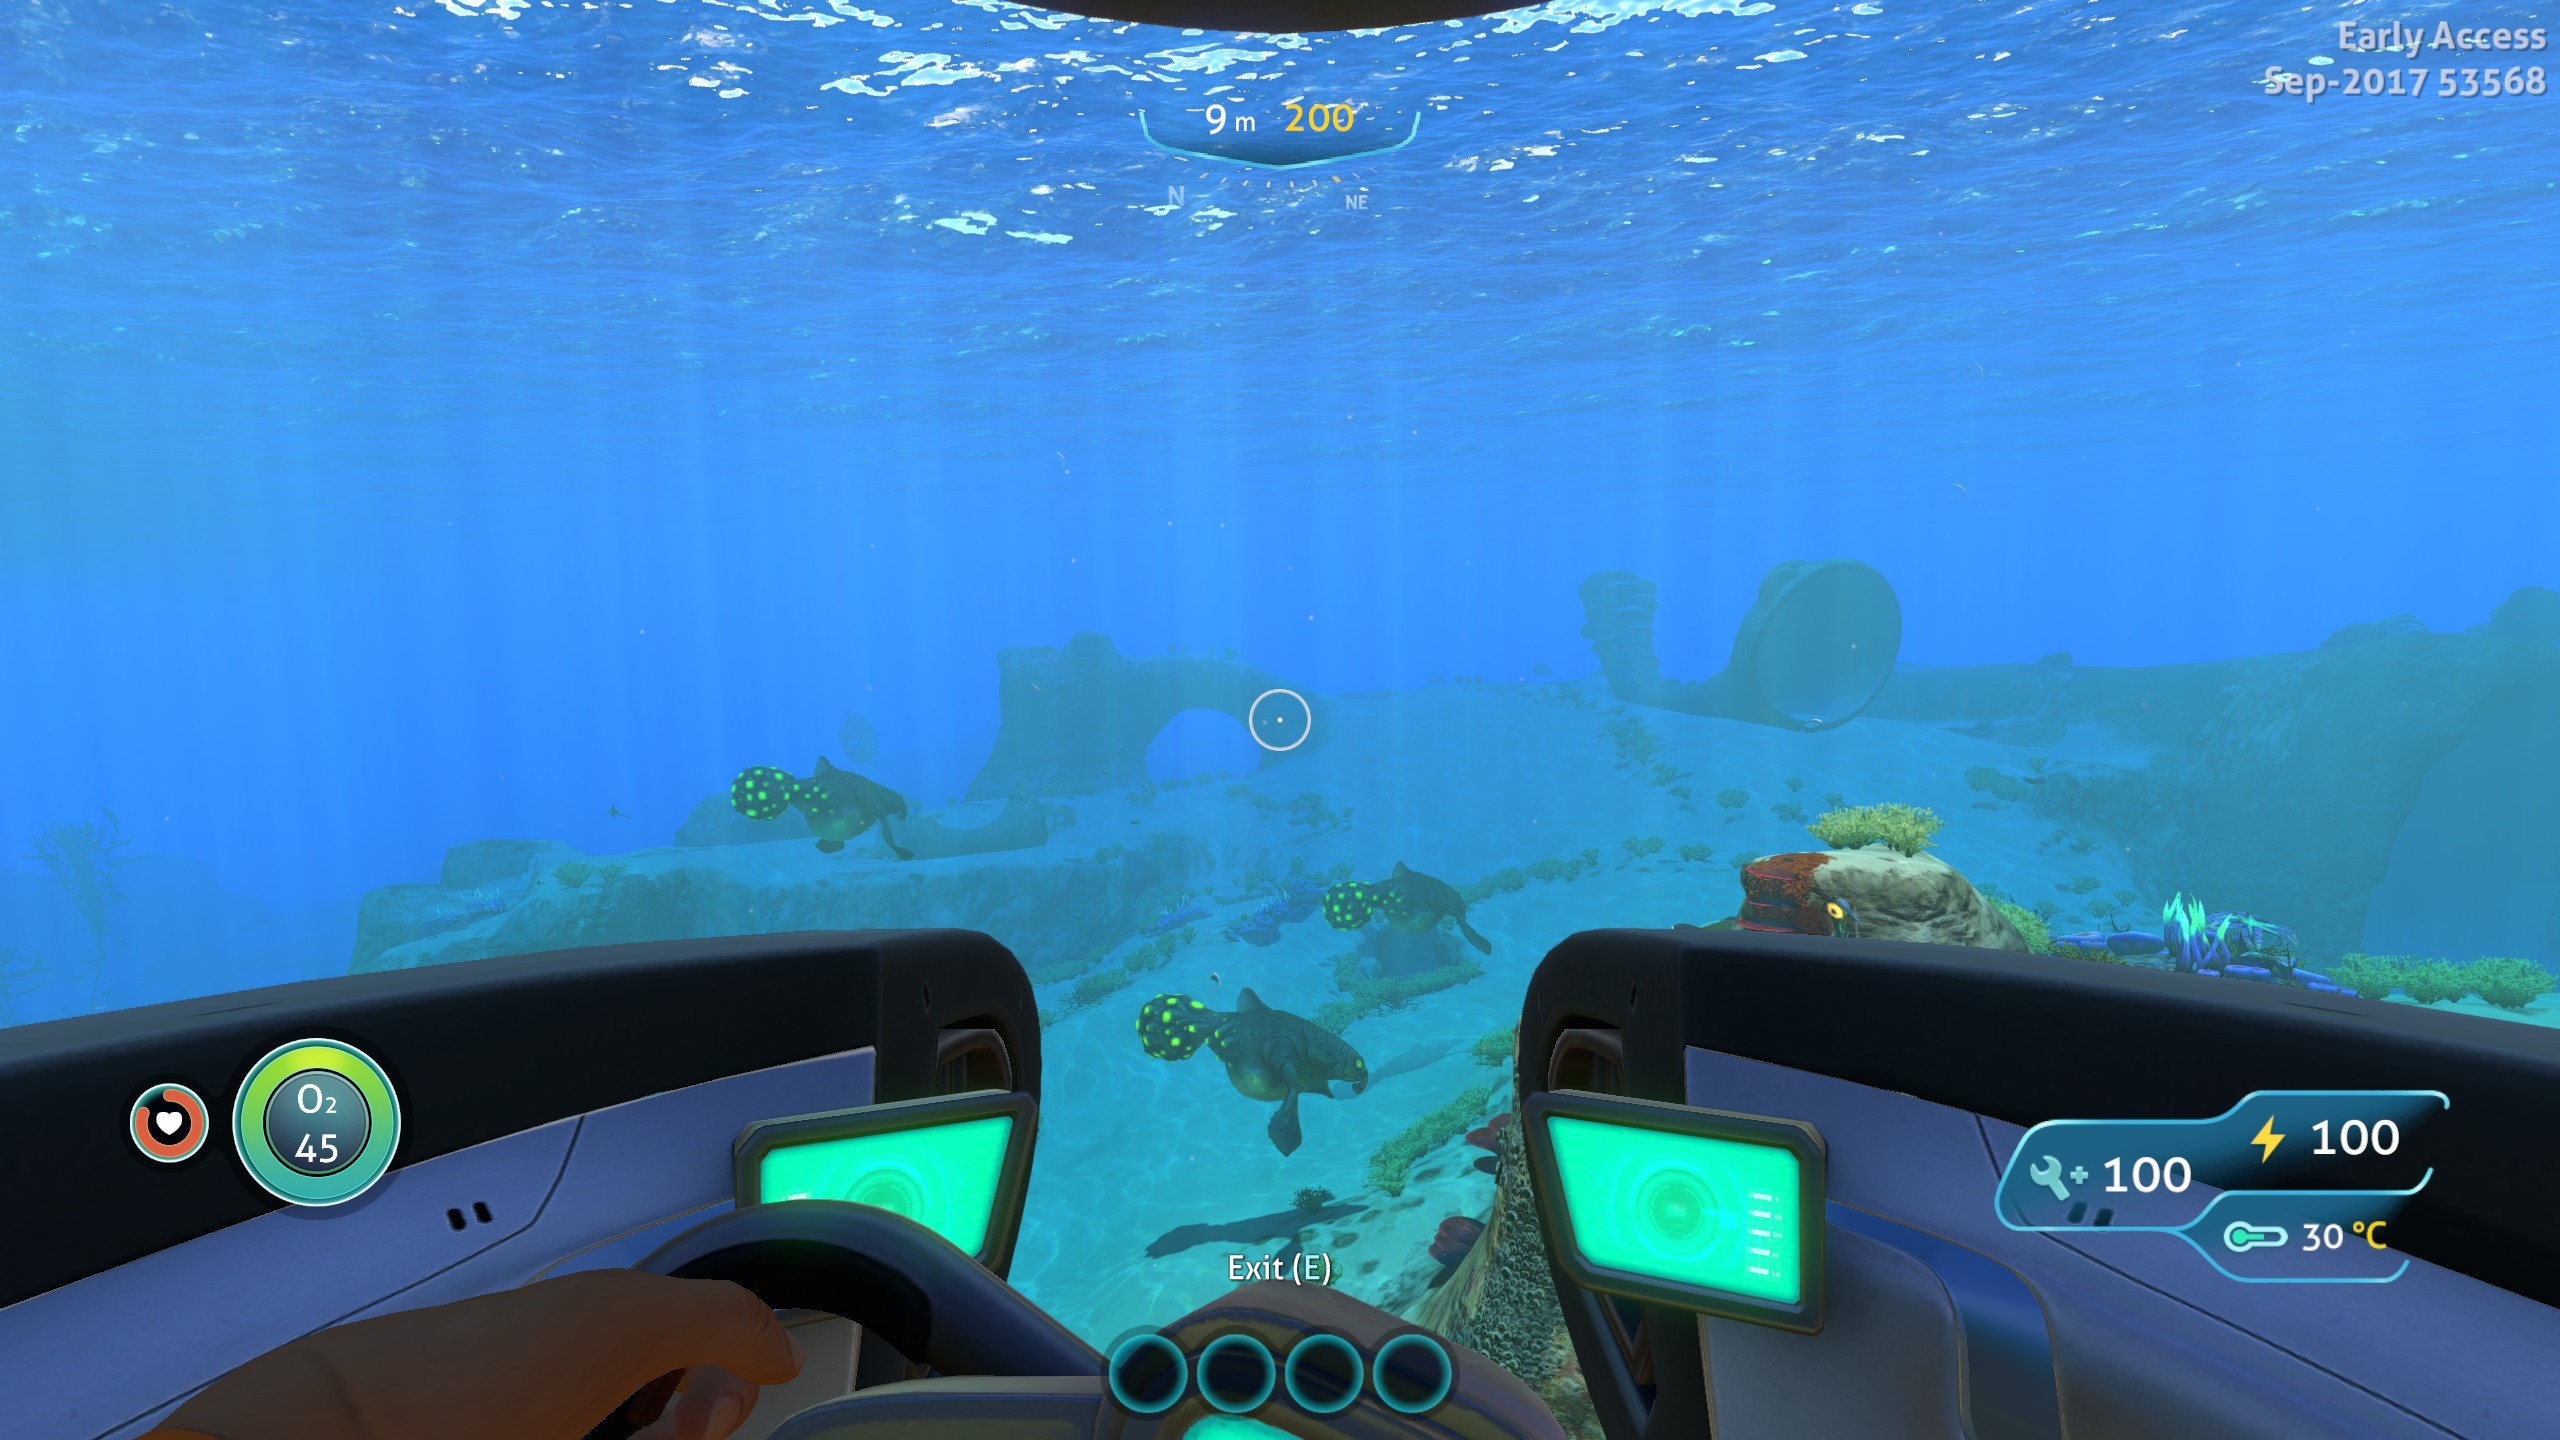 Jun 9 2018 Earth S Oceans Need You Subnautica Hugh Update 12 Jun 2018 The Wdc Sale Has Ended Thank You Everyone Who Participated You Saved The Underwater World Of Planet 4546b Here On Earth Our Own Oceans Need Your Help This Weekend Tonight in subnautica we create our very first scanner room and the genius of it blows me away! subnautica hugh update